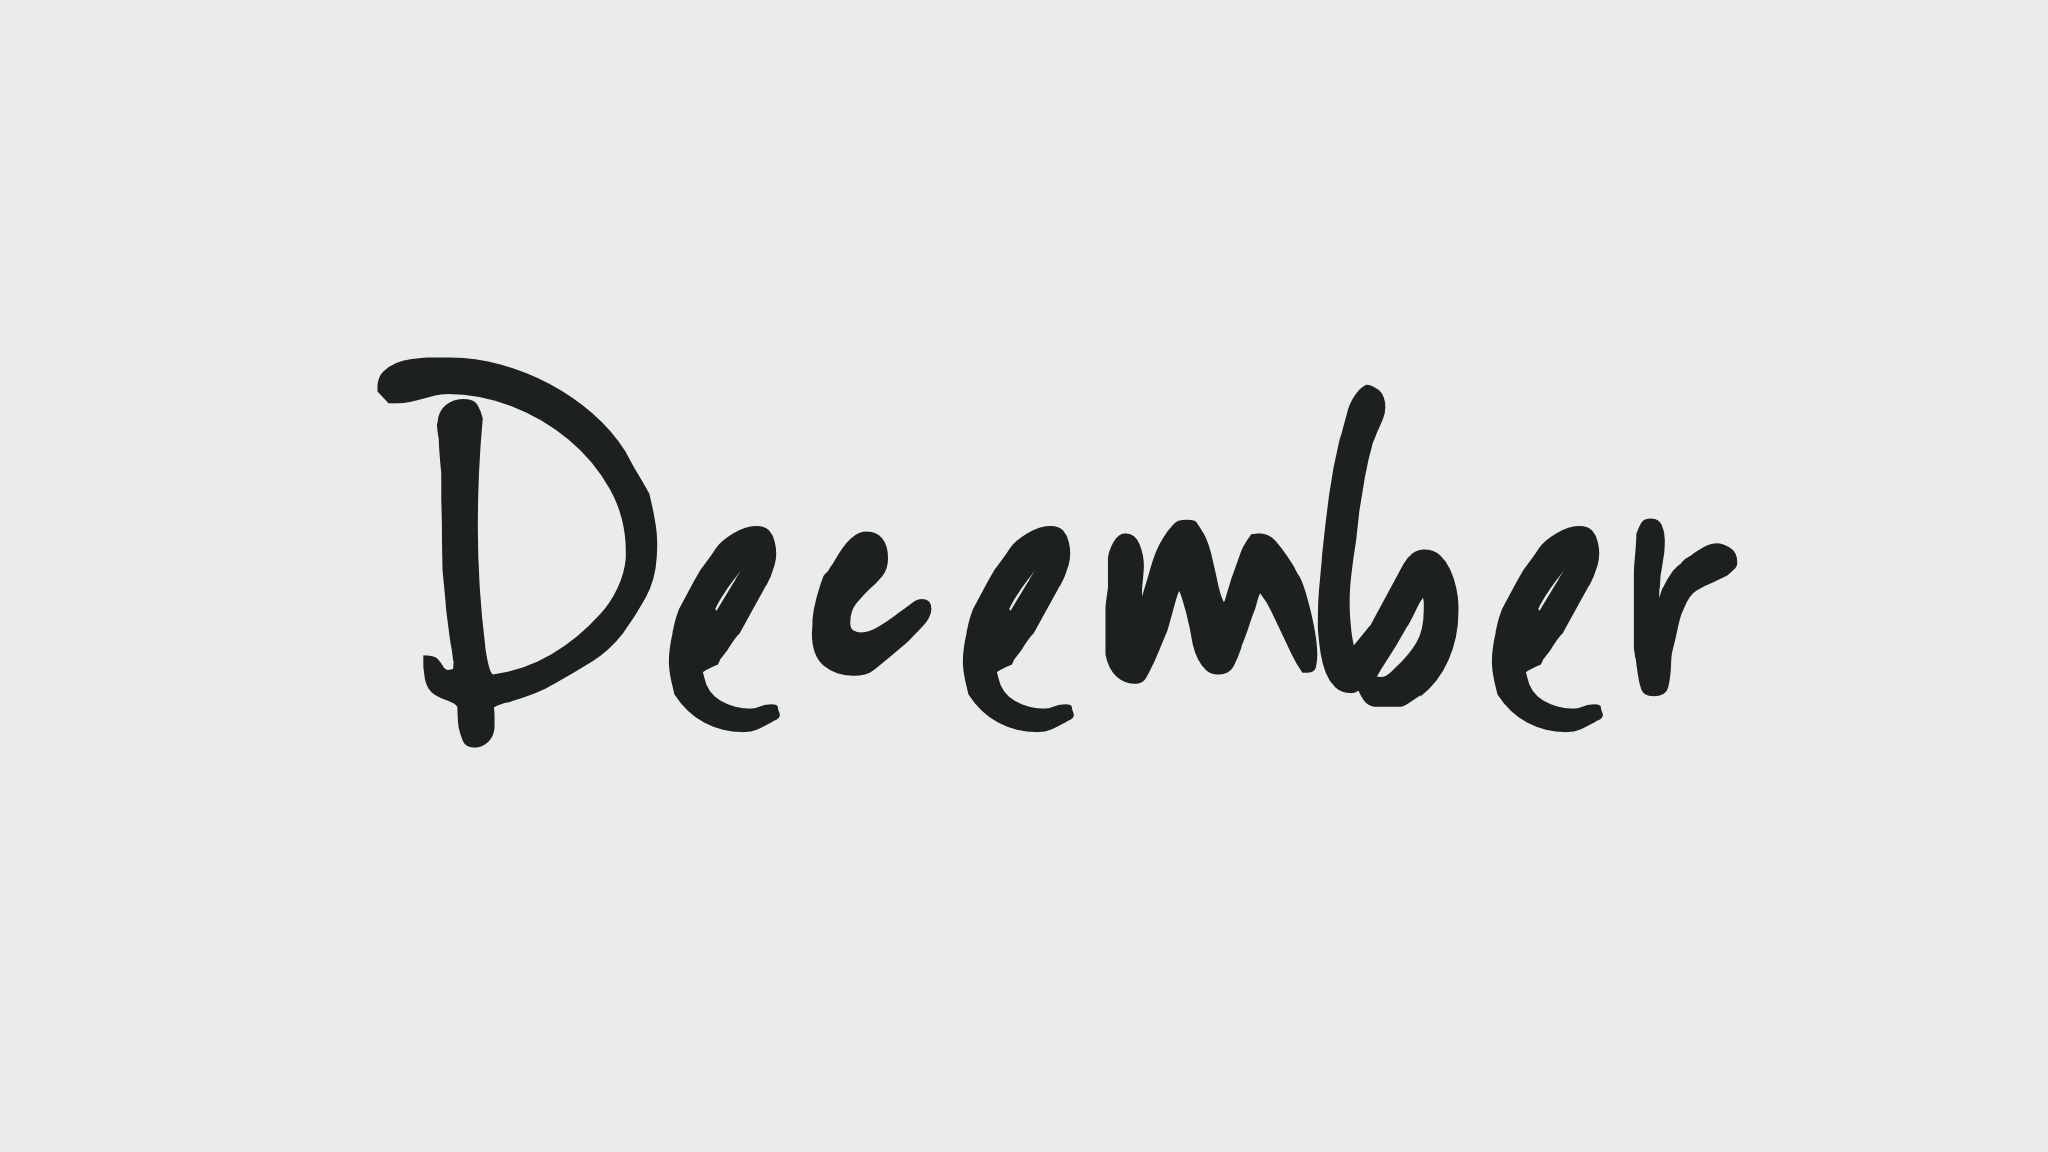 State of Mind December is the month of Magic Forever Chic by Meg